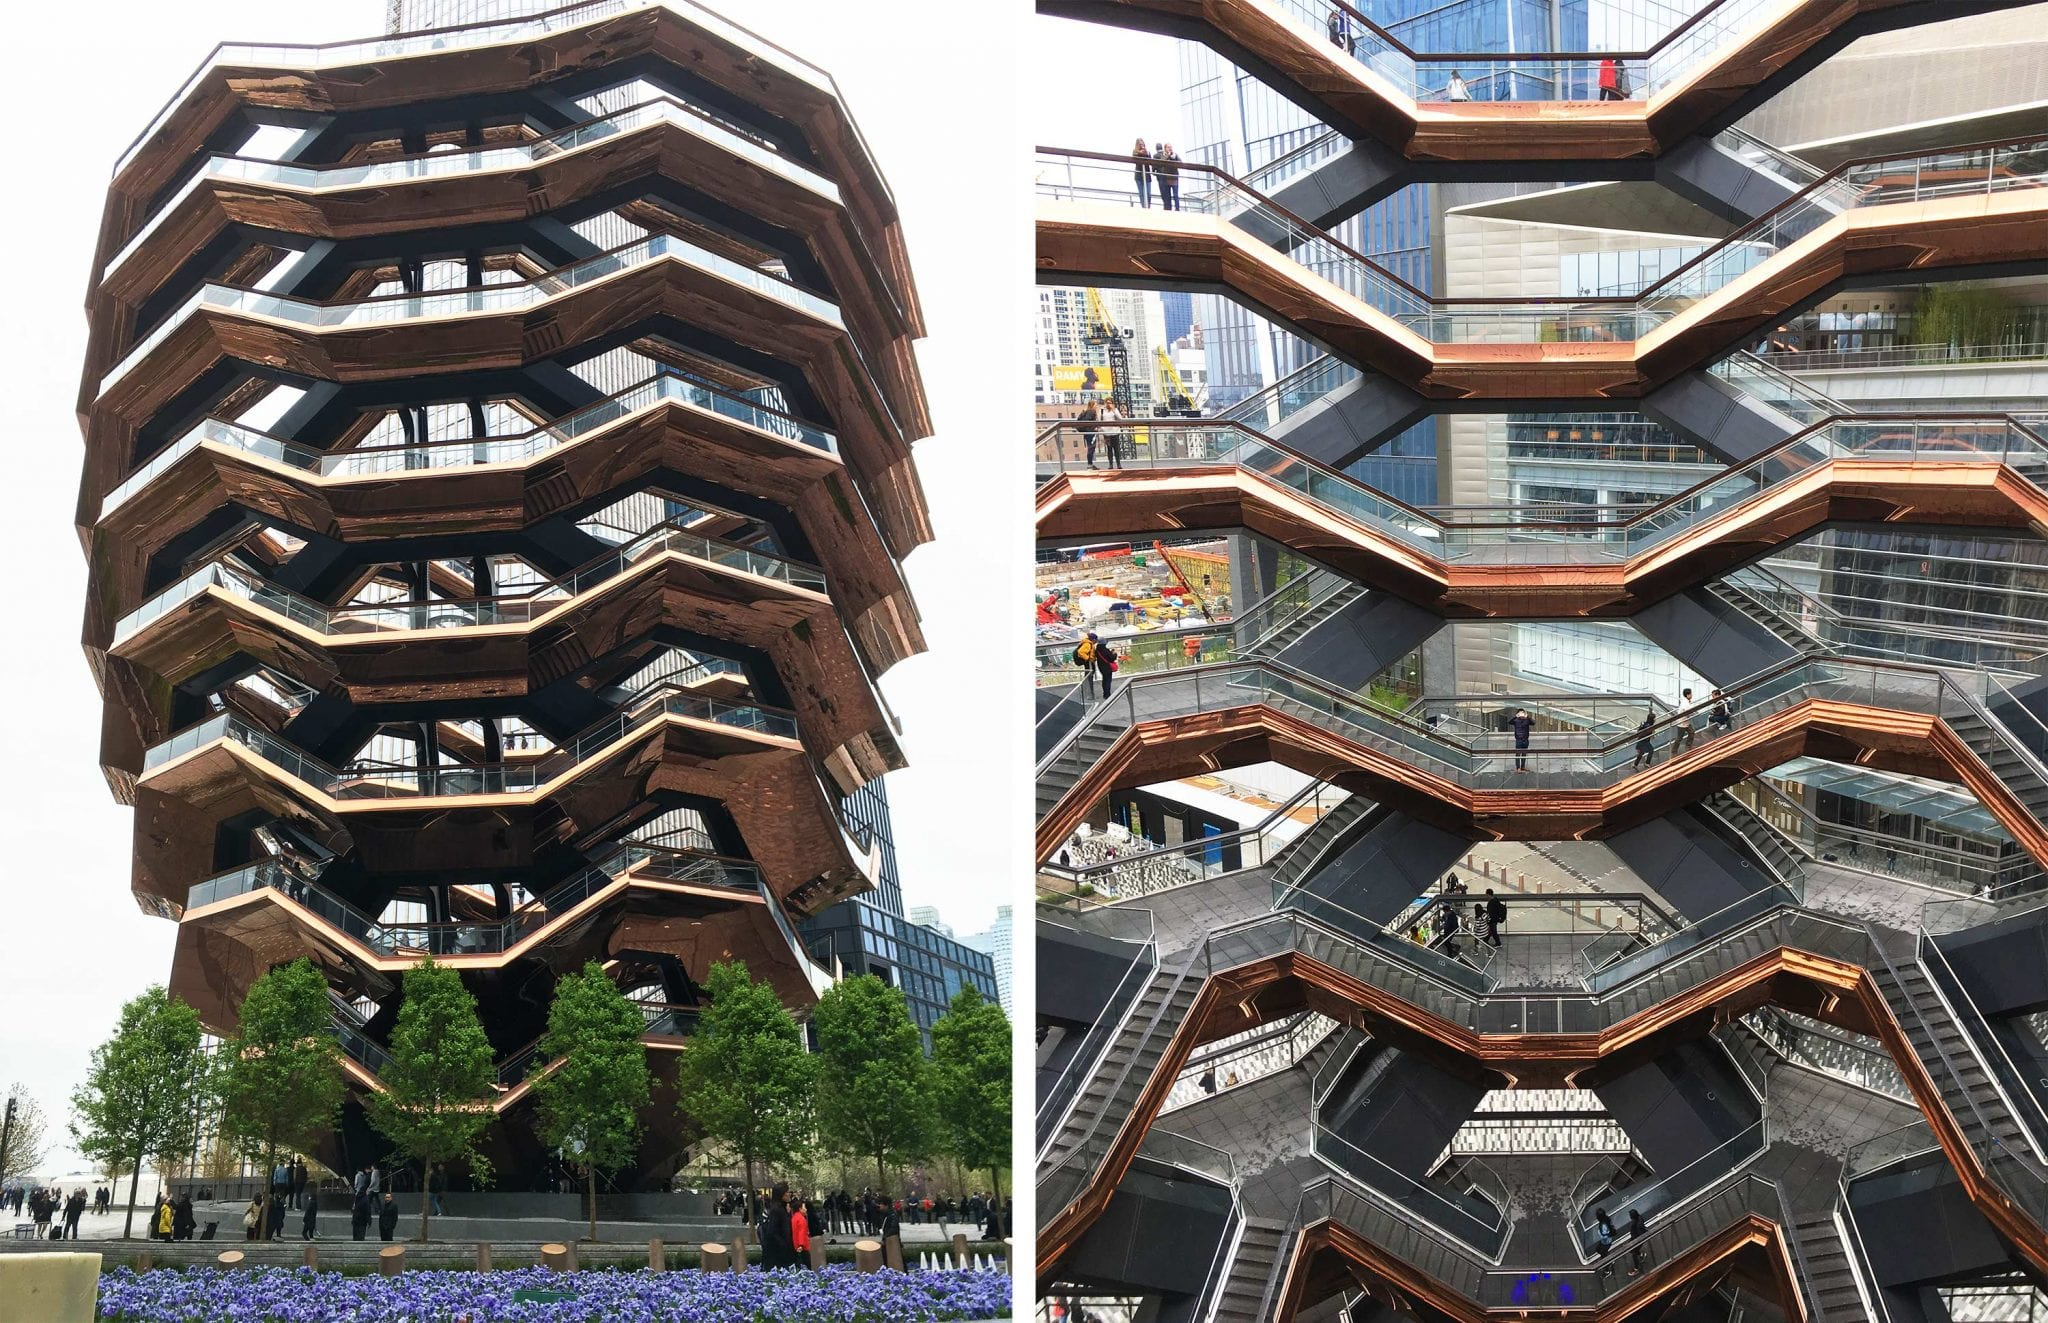 The Vessel builging and stairs at Hudson Yards